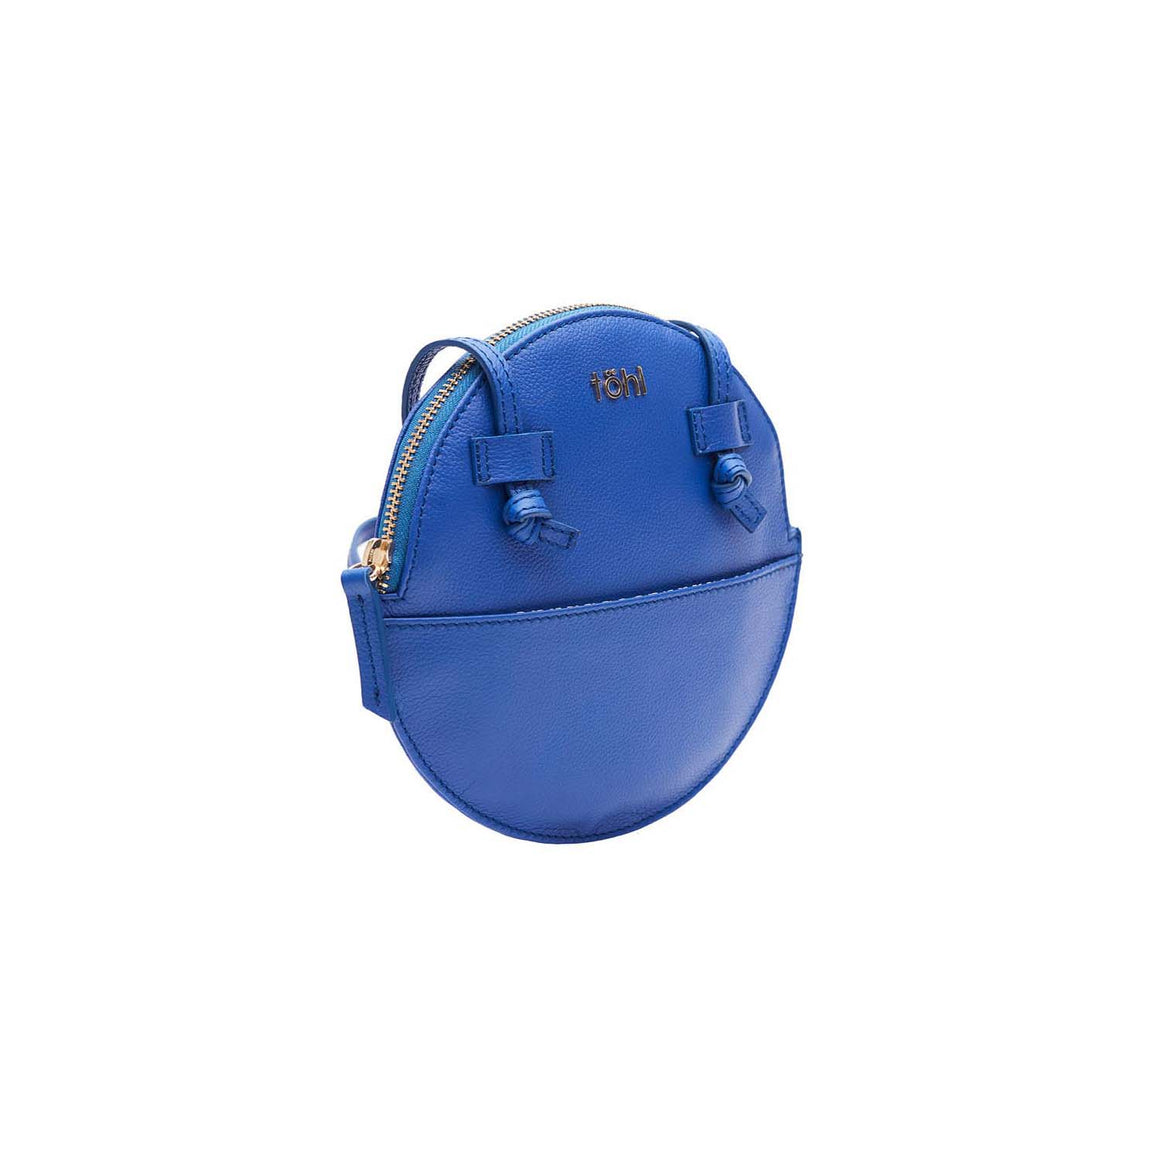 SG 0026 - TOHL LAVO WOMEN'S SLING & CROSSBODY BAG - COBALT BLUE